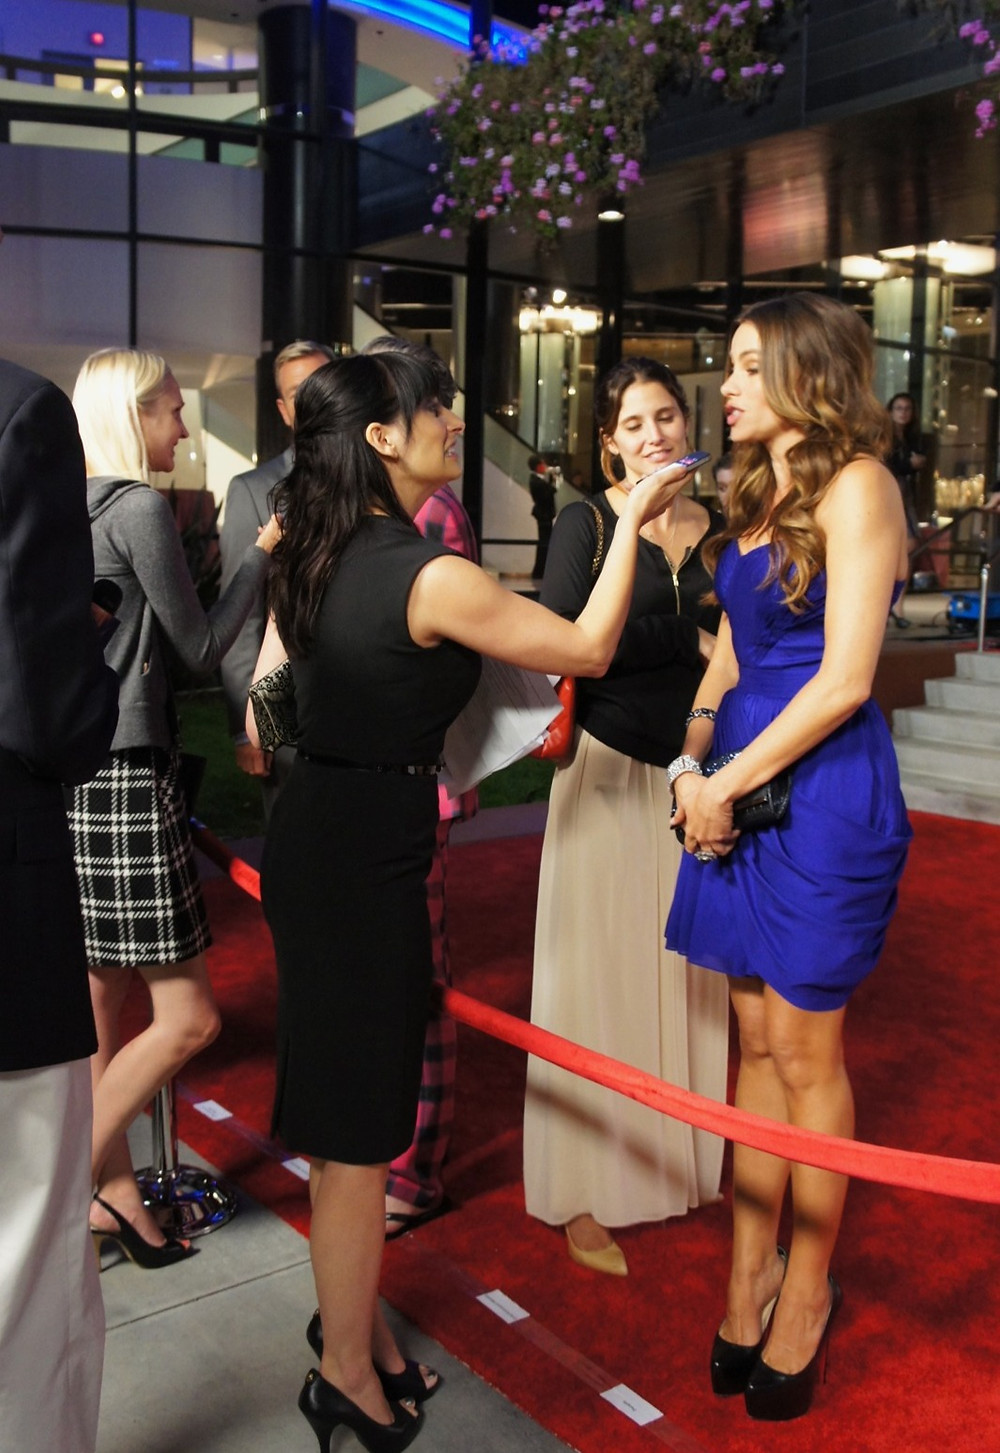 While standing behind velvet ropes, female reporters interview celebrities on the red carpet.